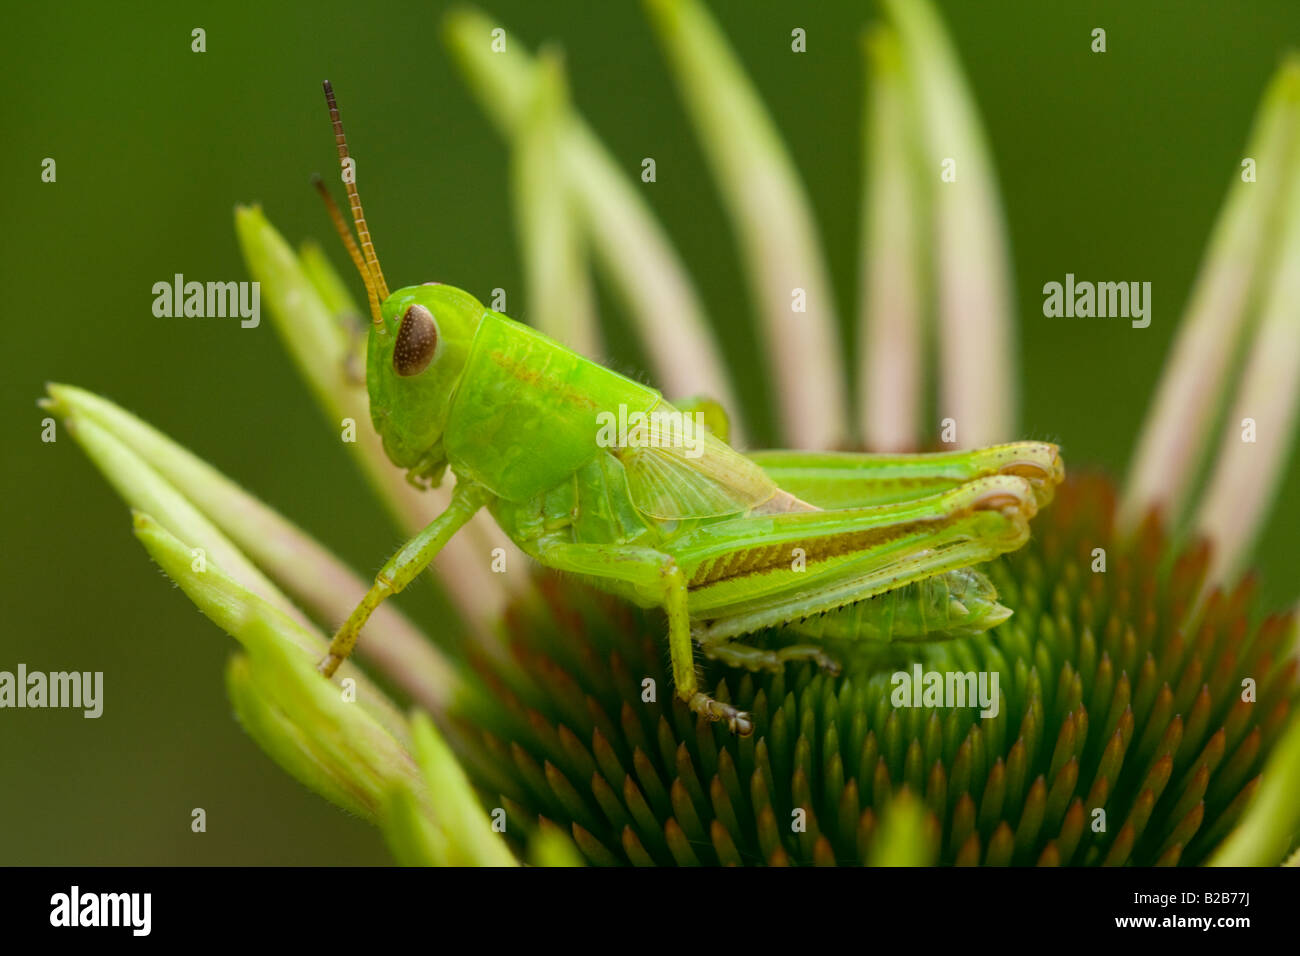 Green Grasshopper on an Opening Coneflower - Stock Image